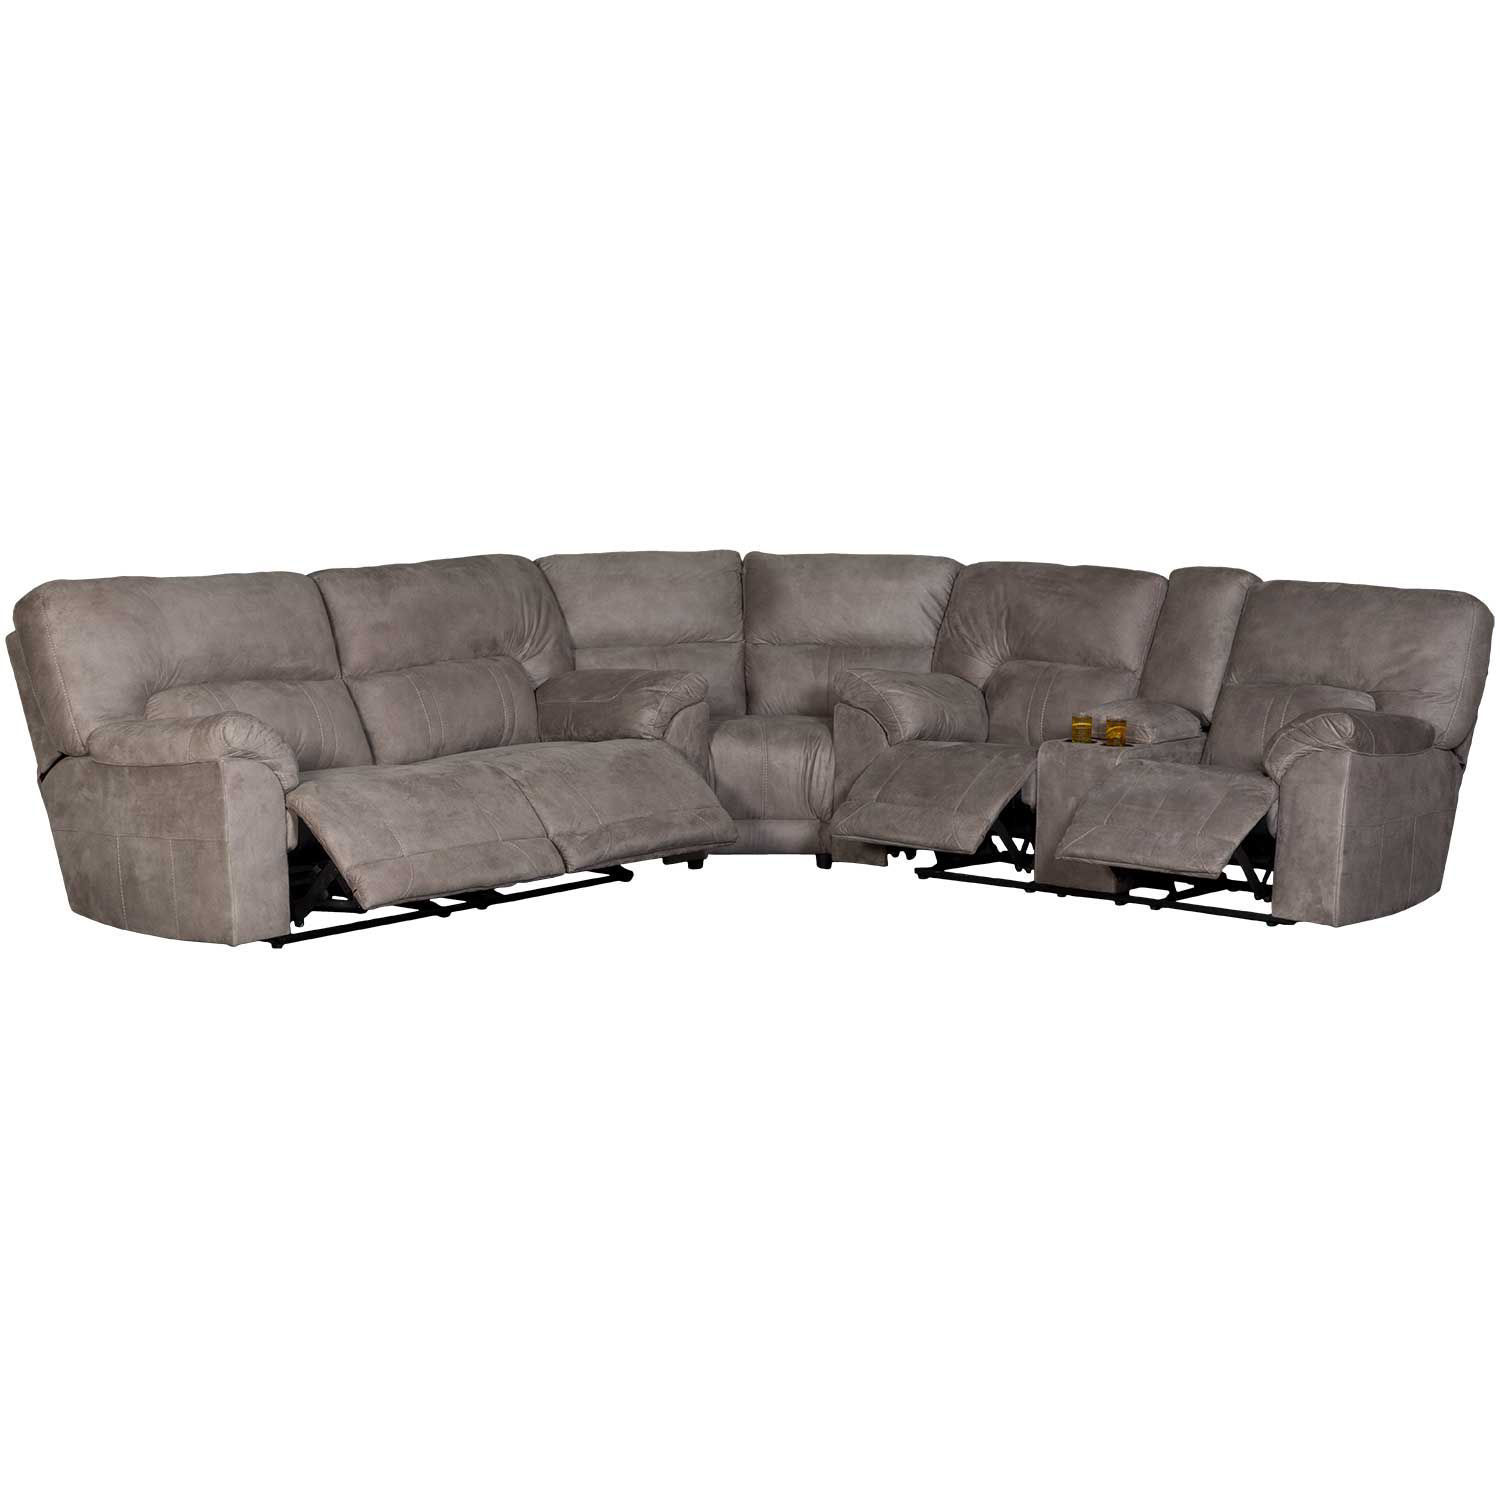 Picture of Cavalcade 3PC Reclining Sectional